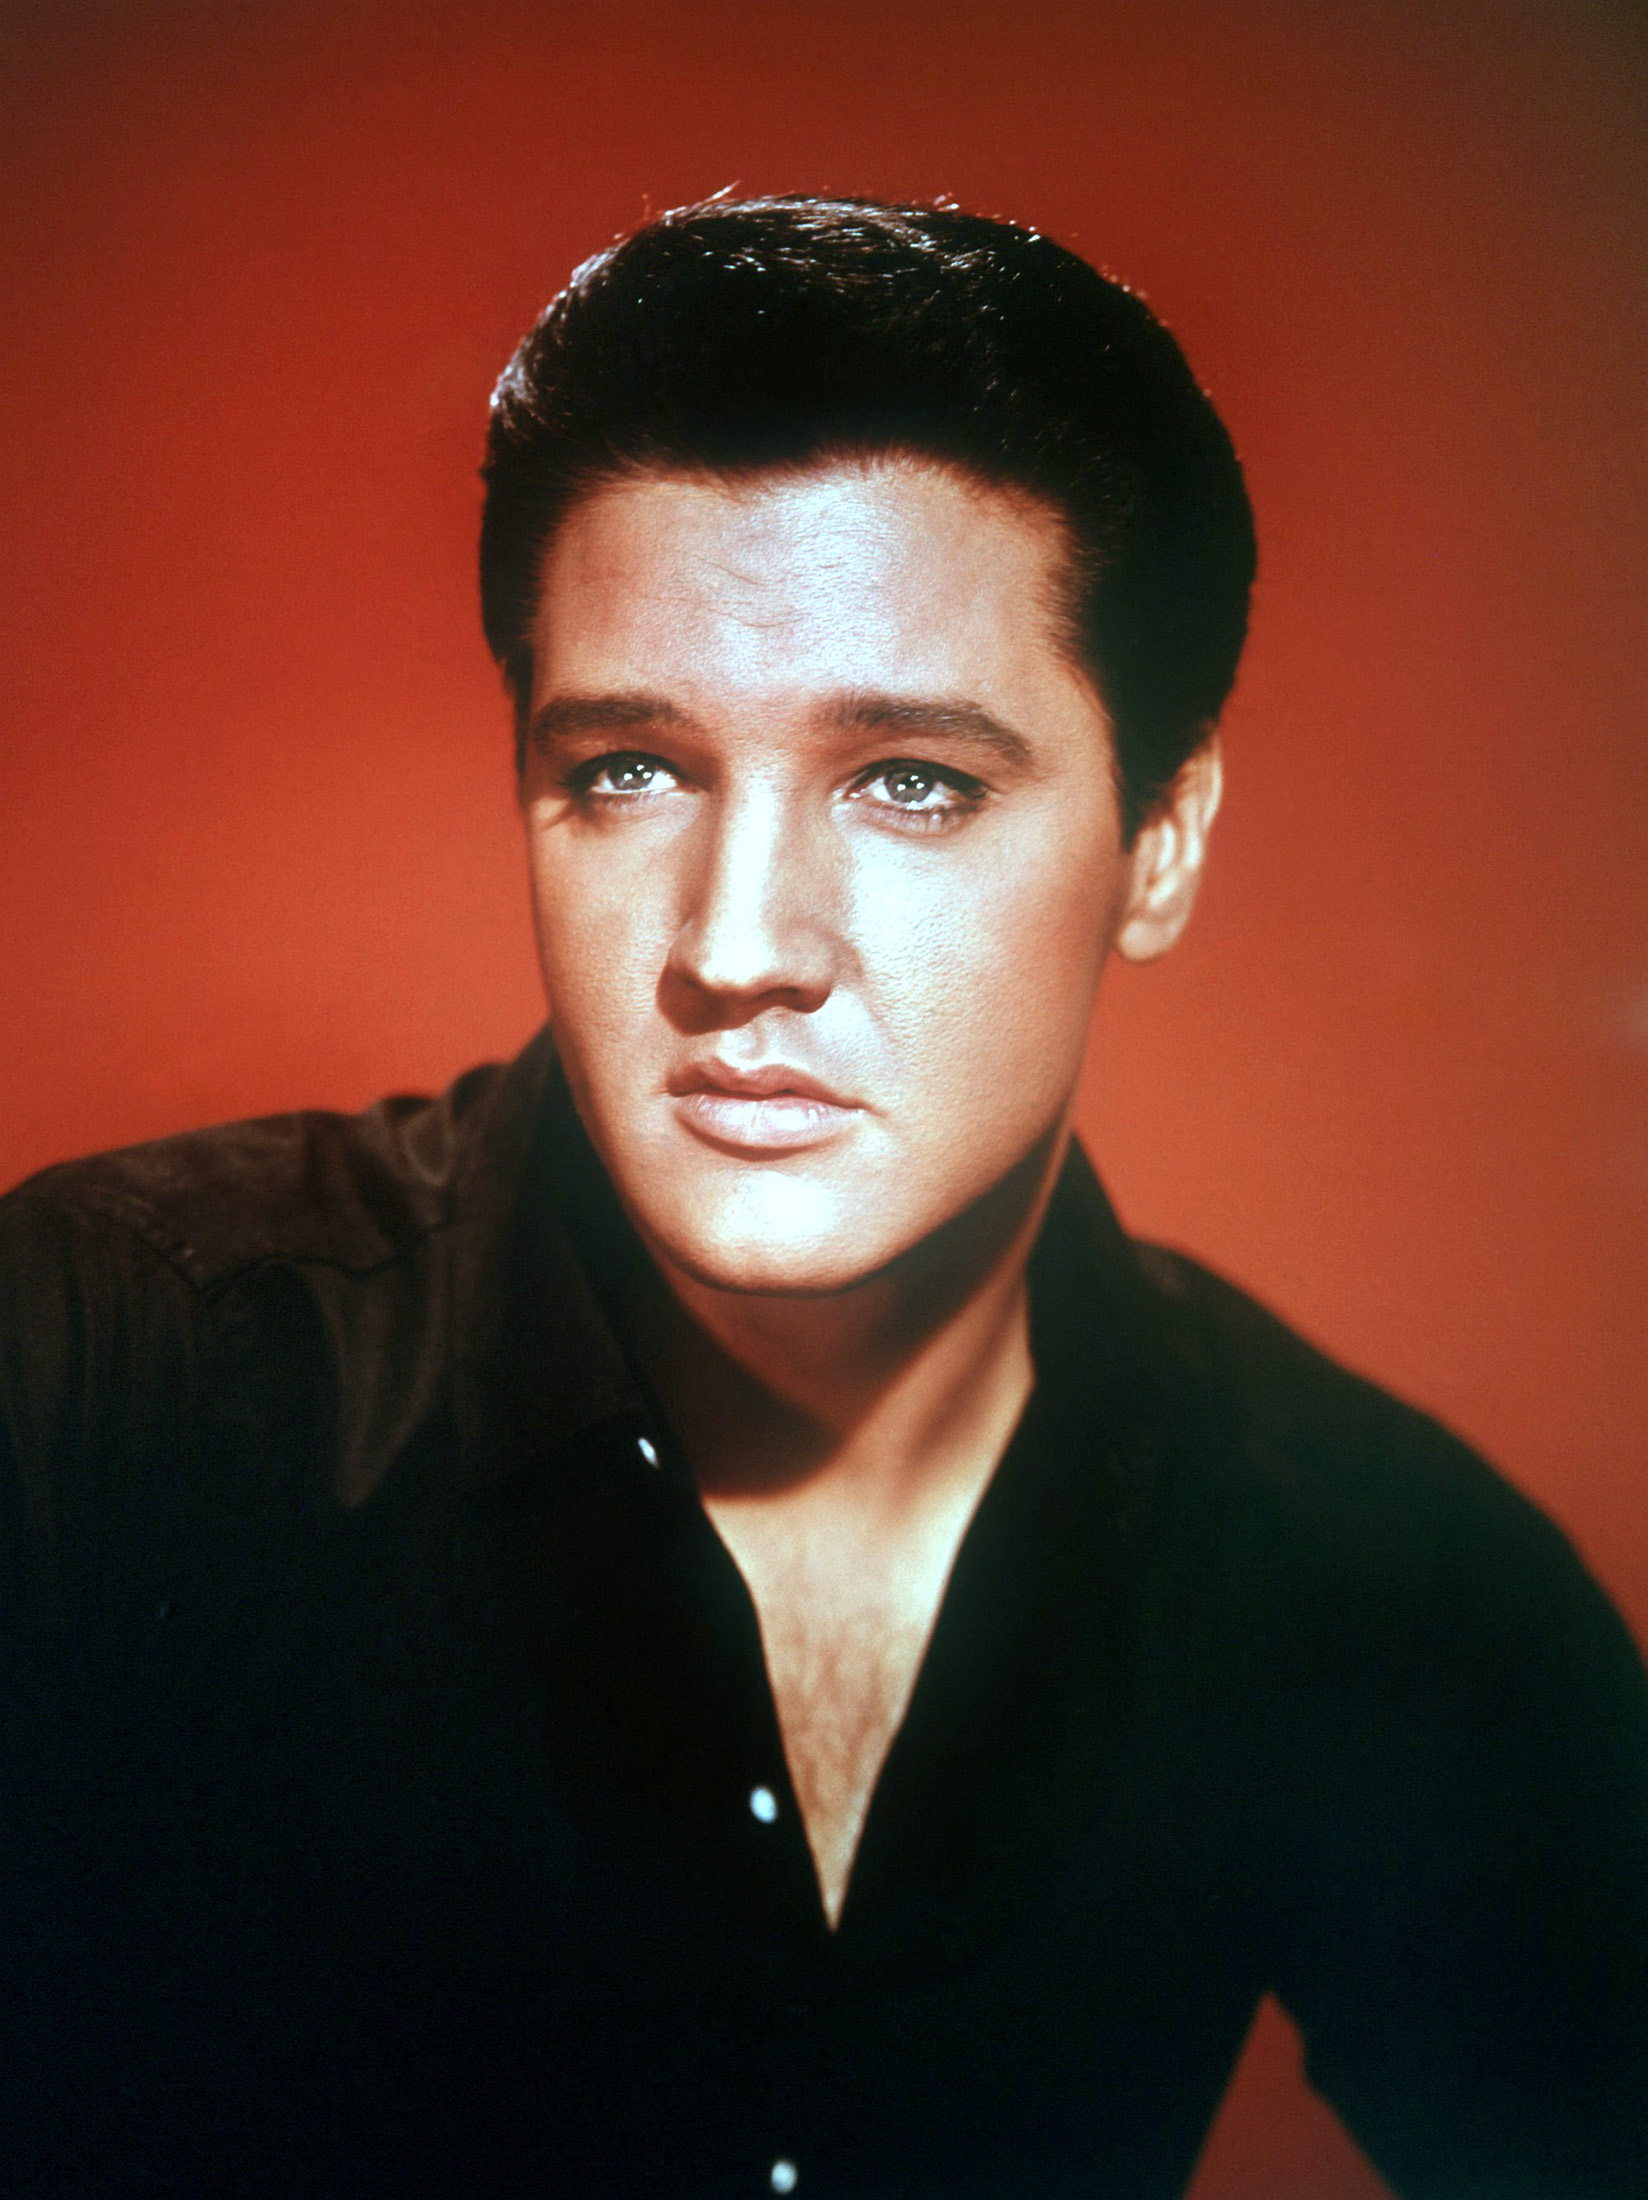 www.cinemagumbo.com - JOURNAL - Elvis Presley